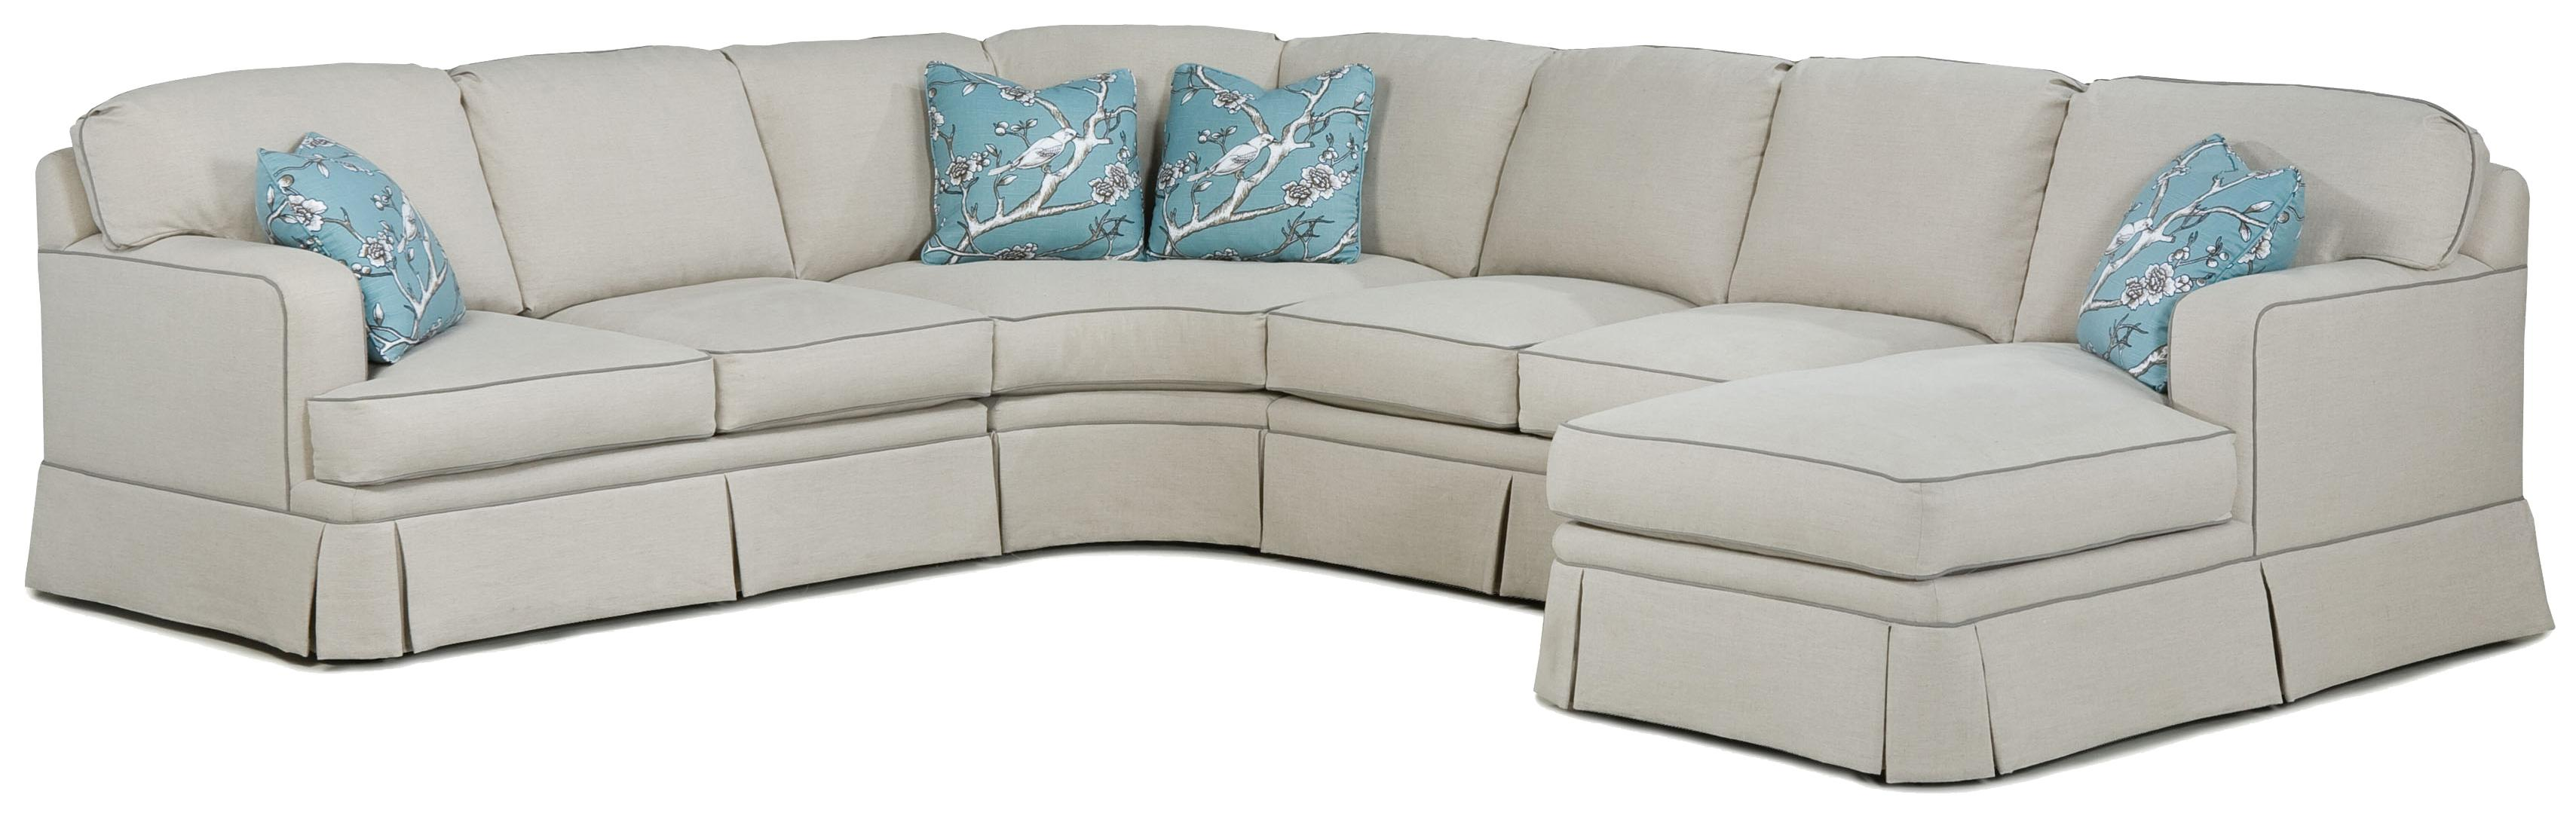 2TKS Modern Sectional by Grove Park at Sprintz Furniture